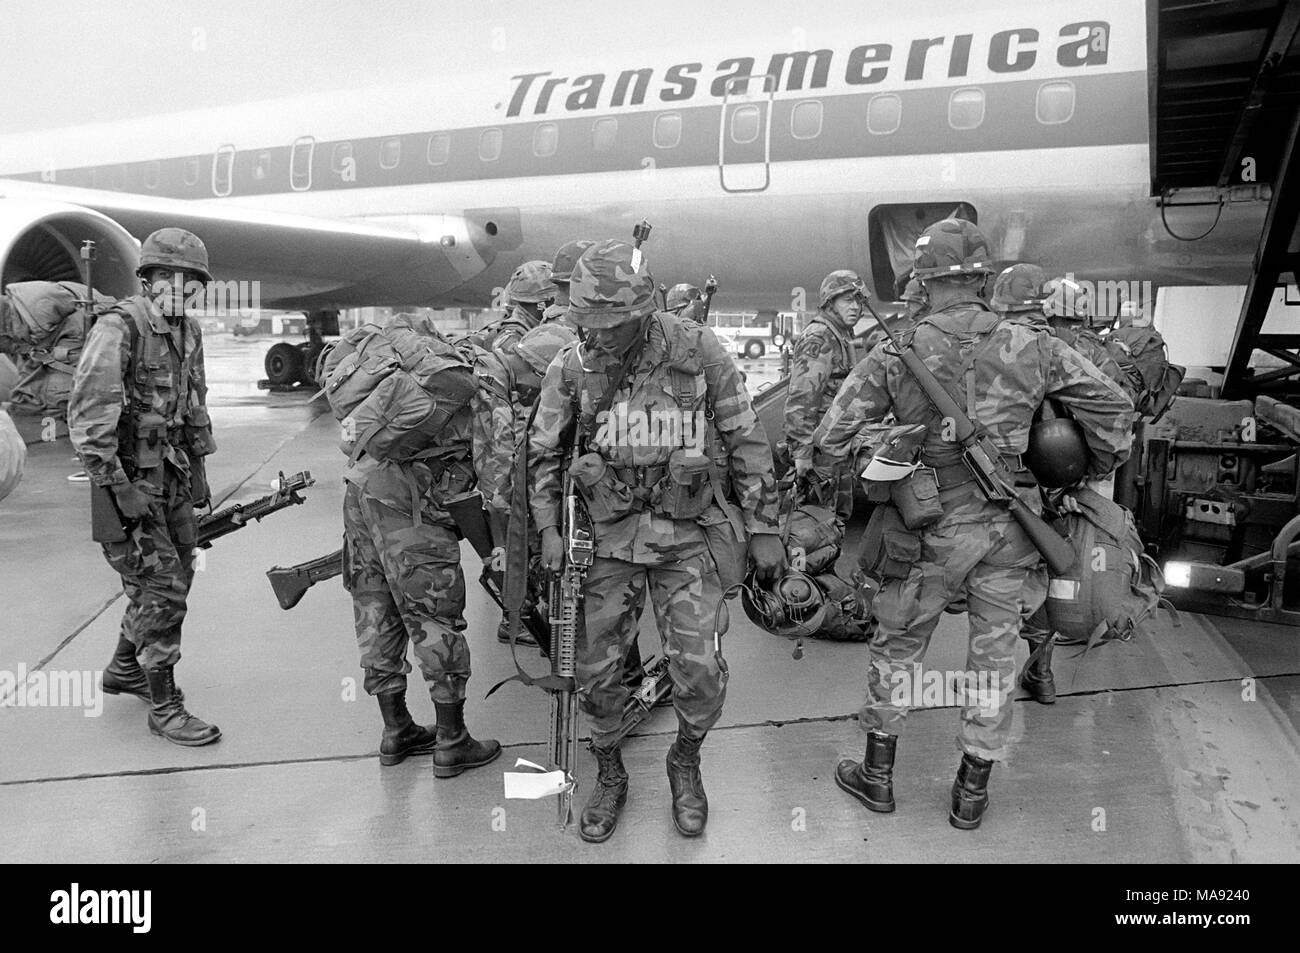 base of the US Air Force in Rhein-Main (Frankfurt, Germany), September 1983, the annual exercise 'Reforger' (Return of Forces to Germany) to monitor times and ways to send reinforcements directly from the USA in case of conflict. - Stock Image